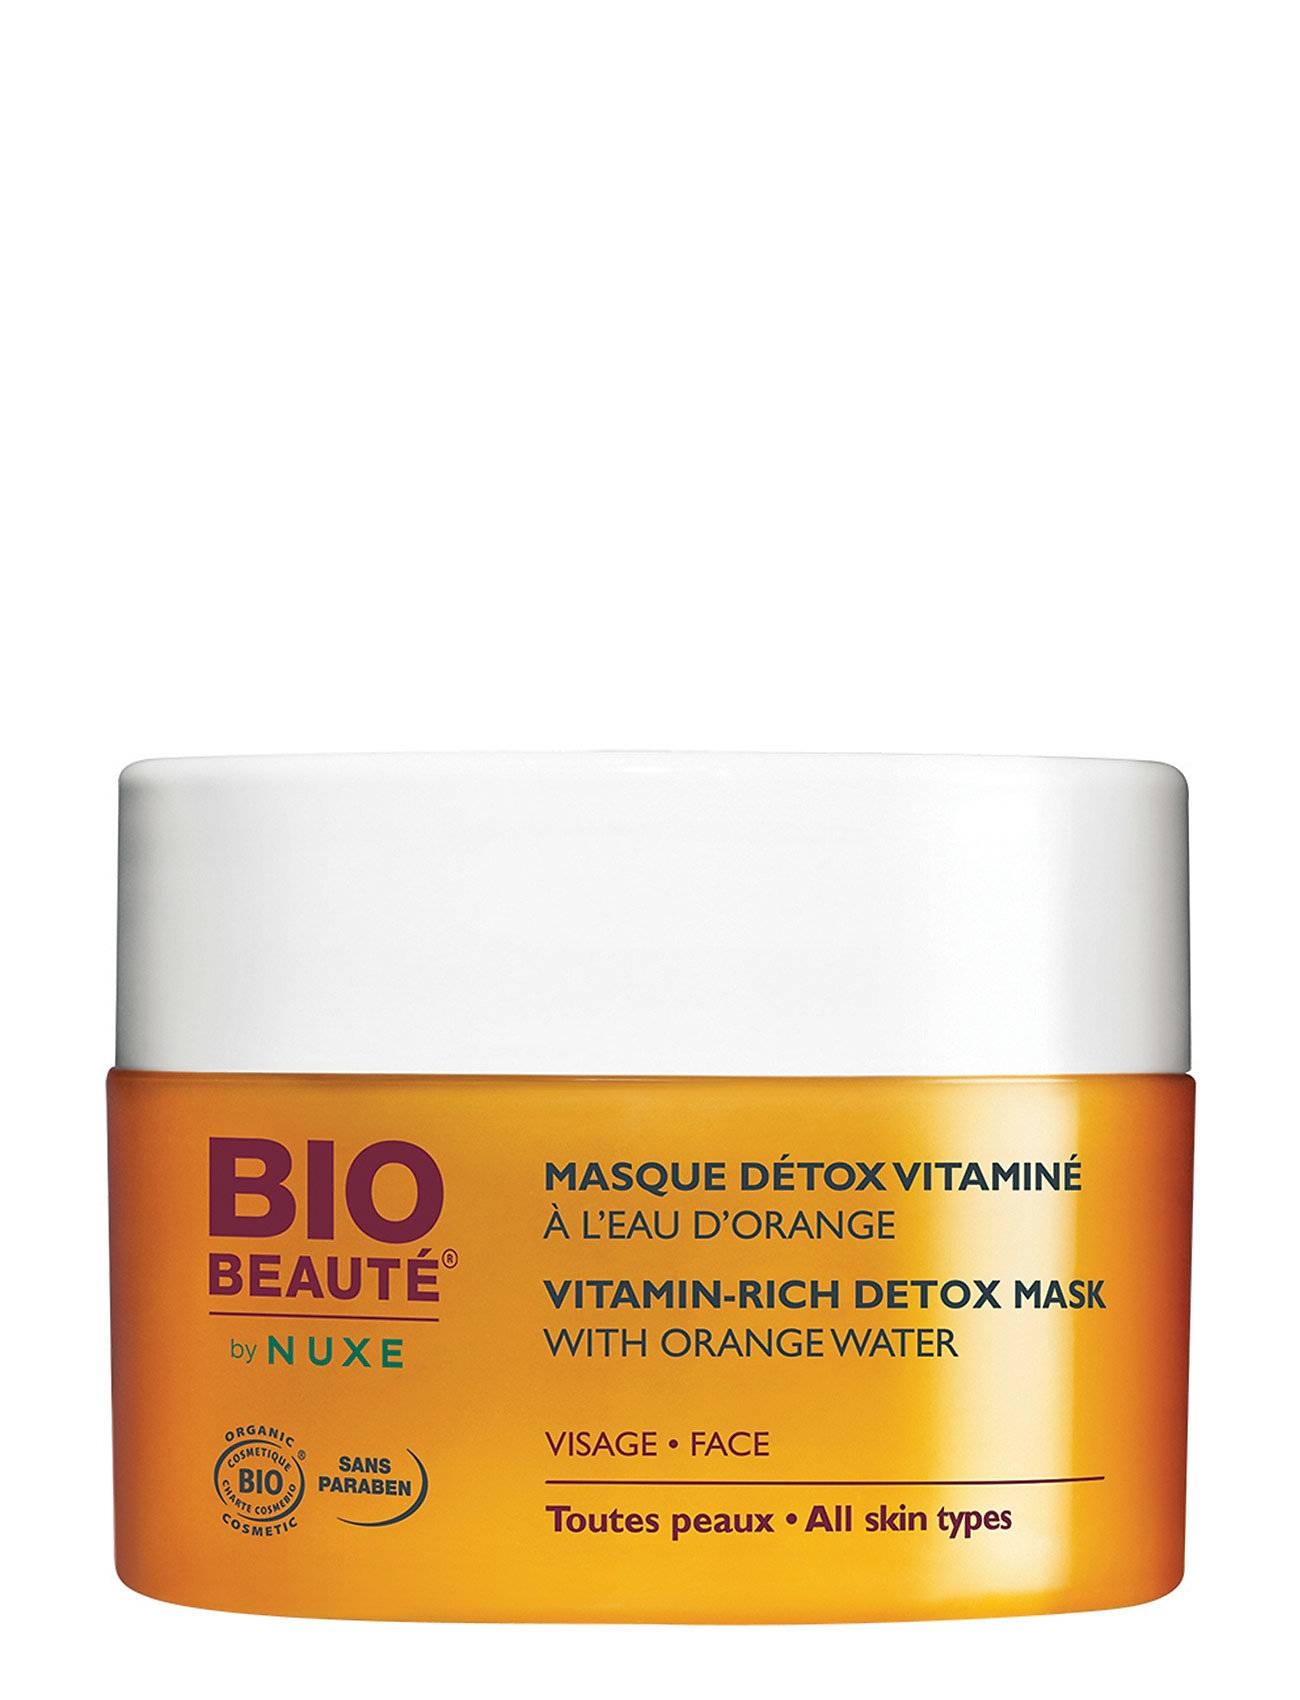 Bio-Beauté by NUXE Vitamin-Rich Radiance Detox Mask